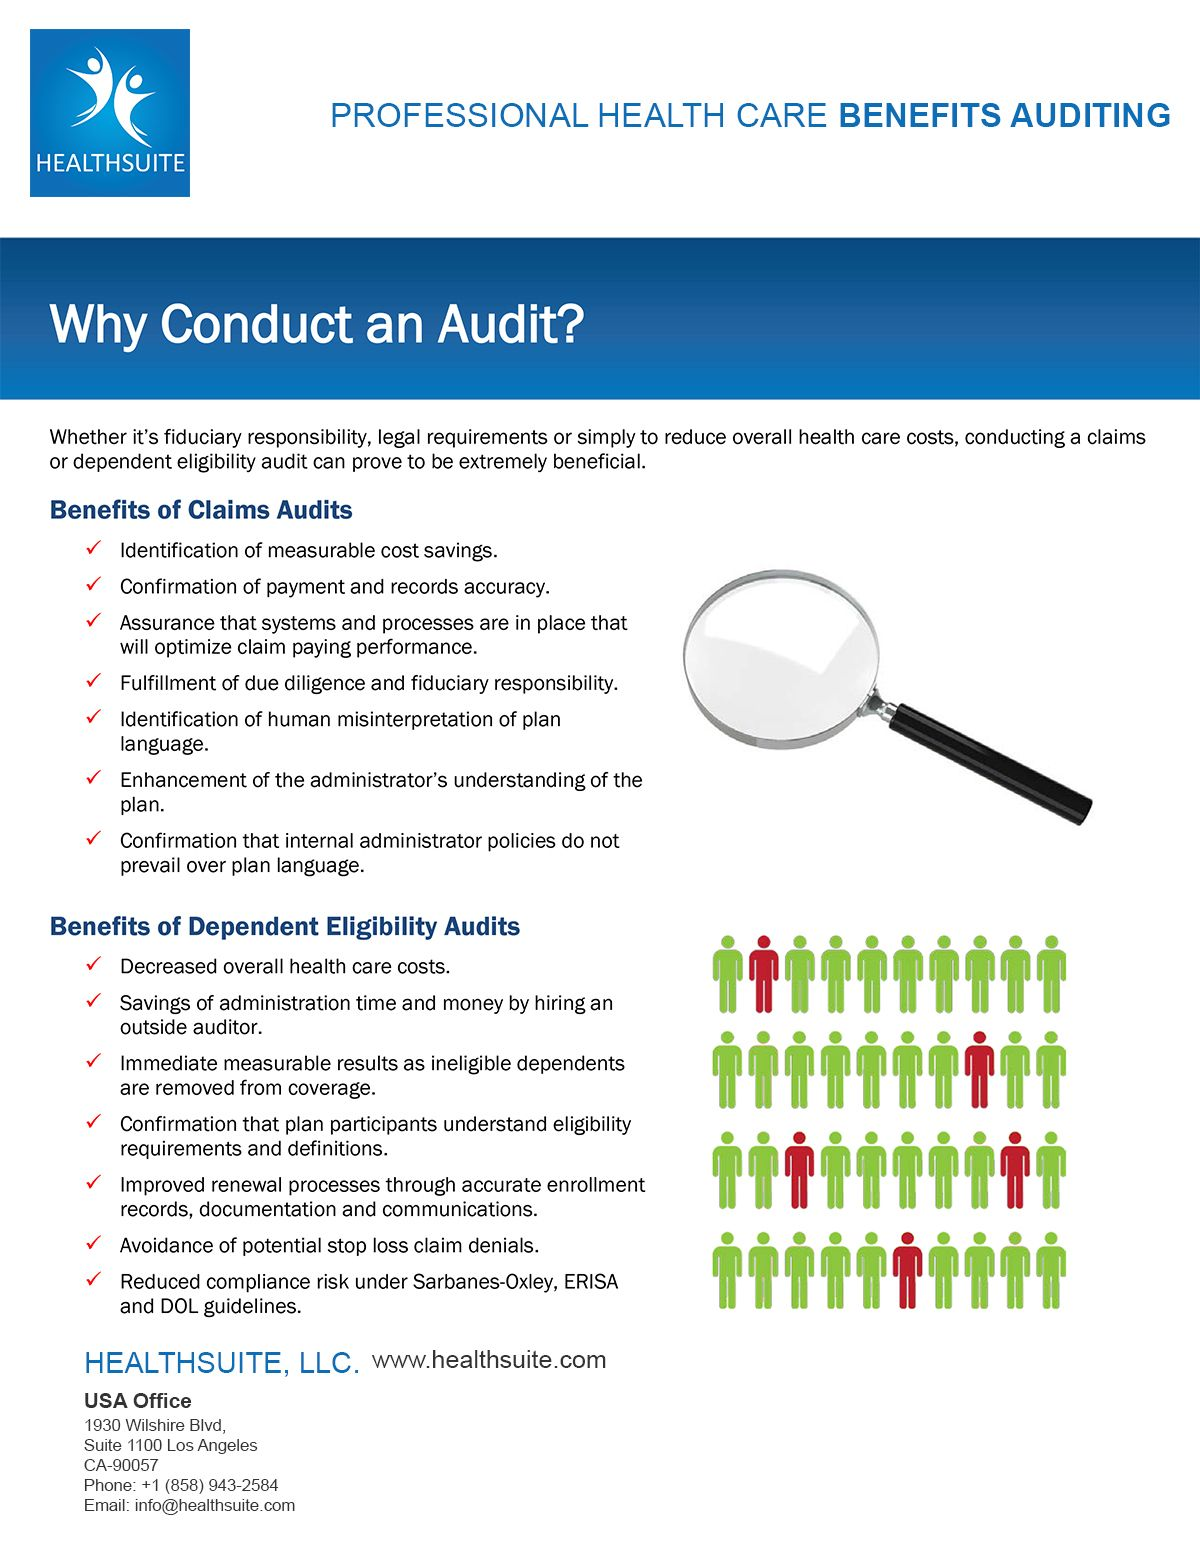 Healthcare Claim Audit by Healthsuite. See the many